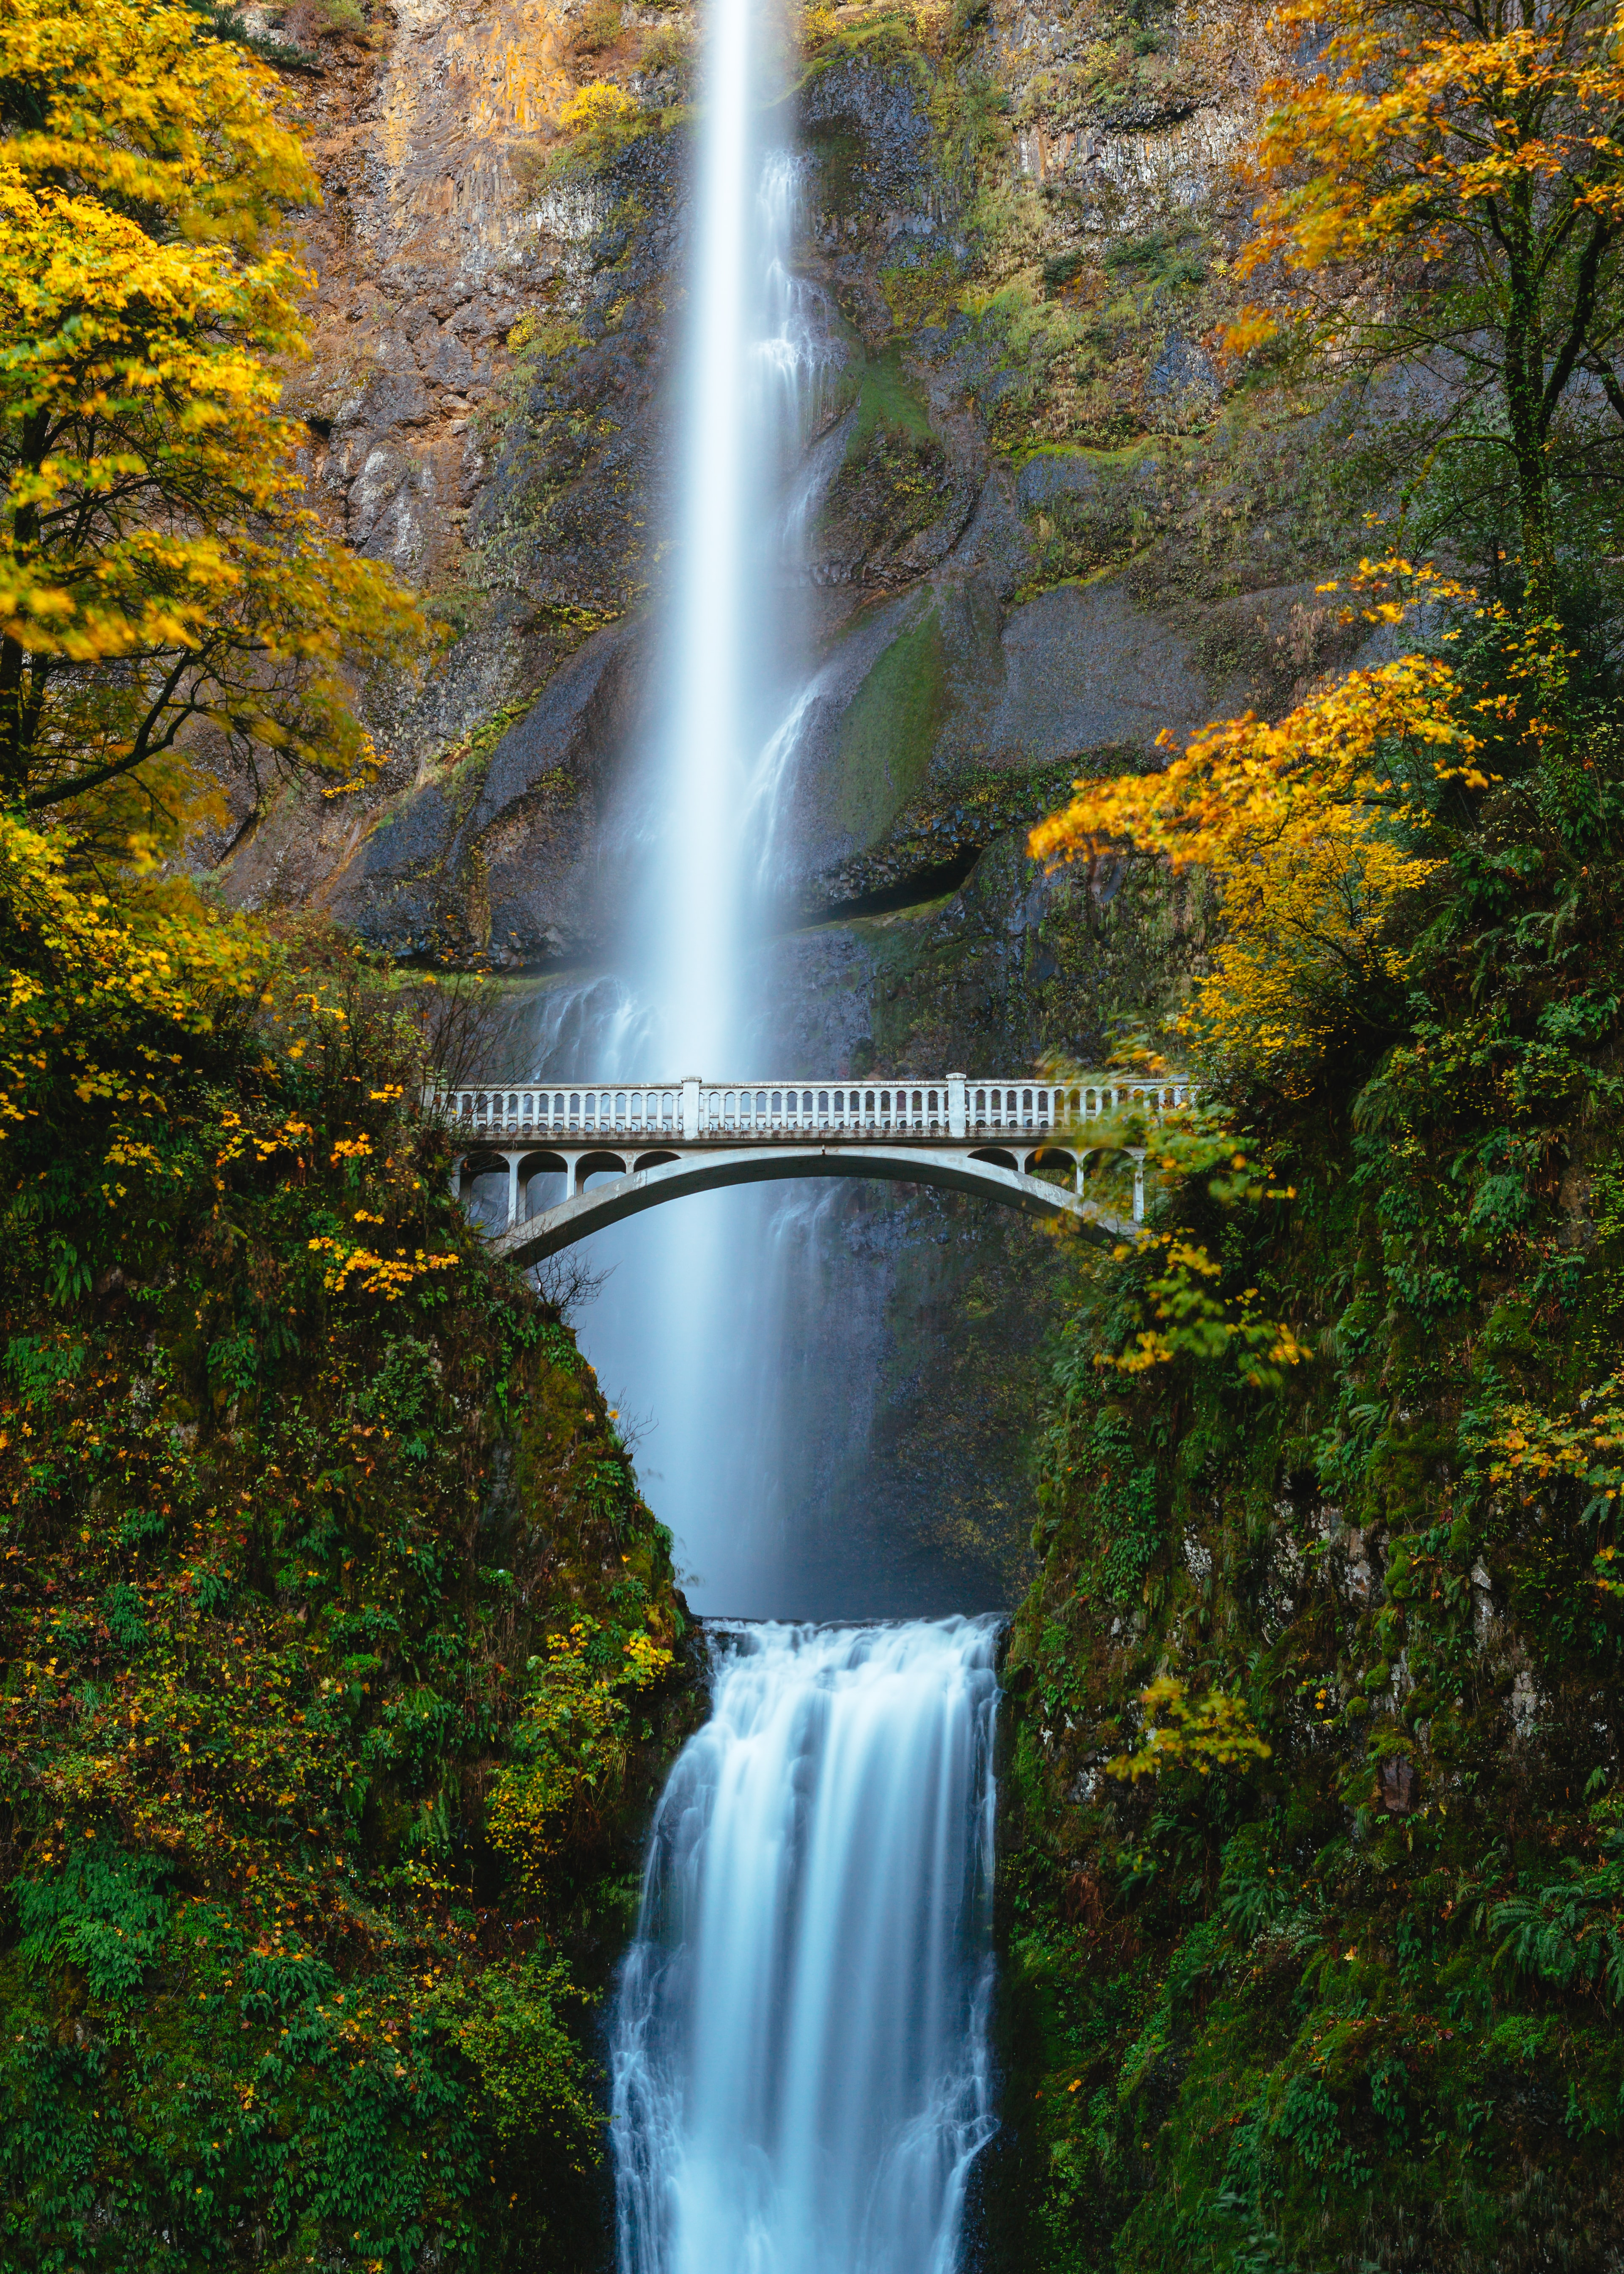 500 waterfall images [stunning!] download free pictures on unsplash